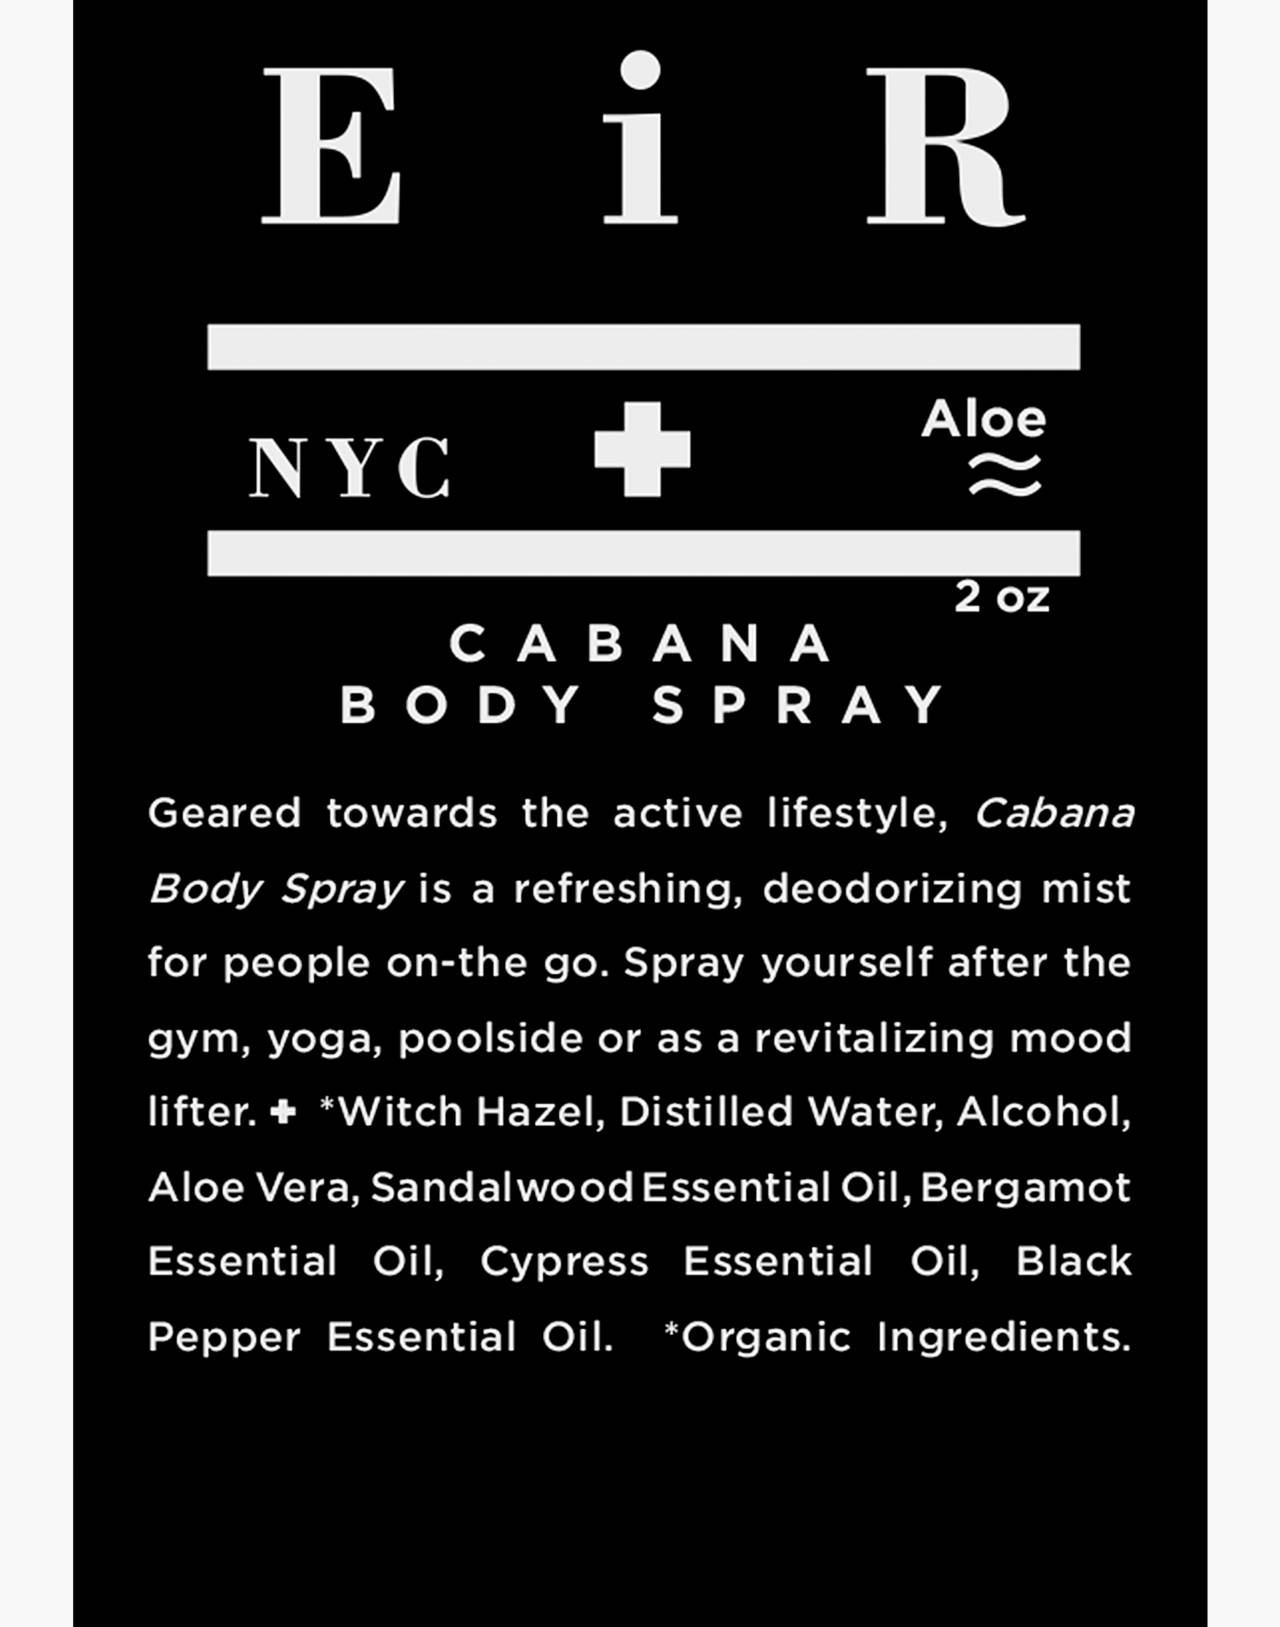 Eir NYC® Cabana Body Spray in one color image 2